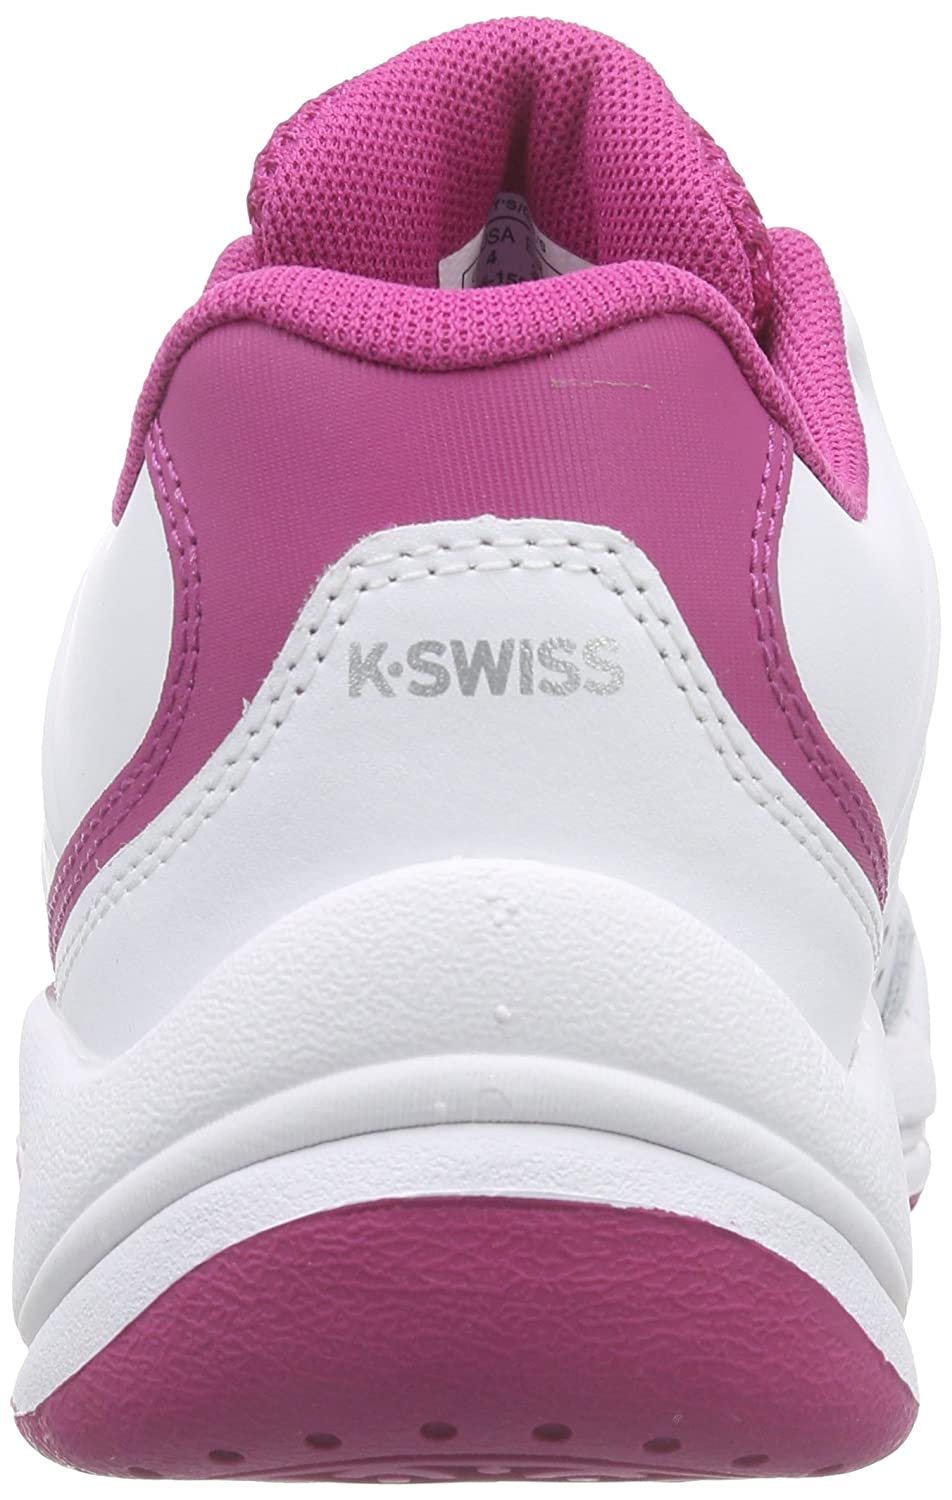 K-Swiss Ultrascendor Omni Junior Tennis Shoe